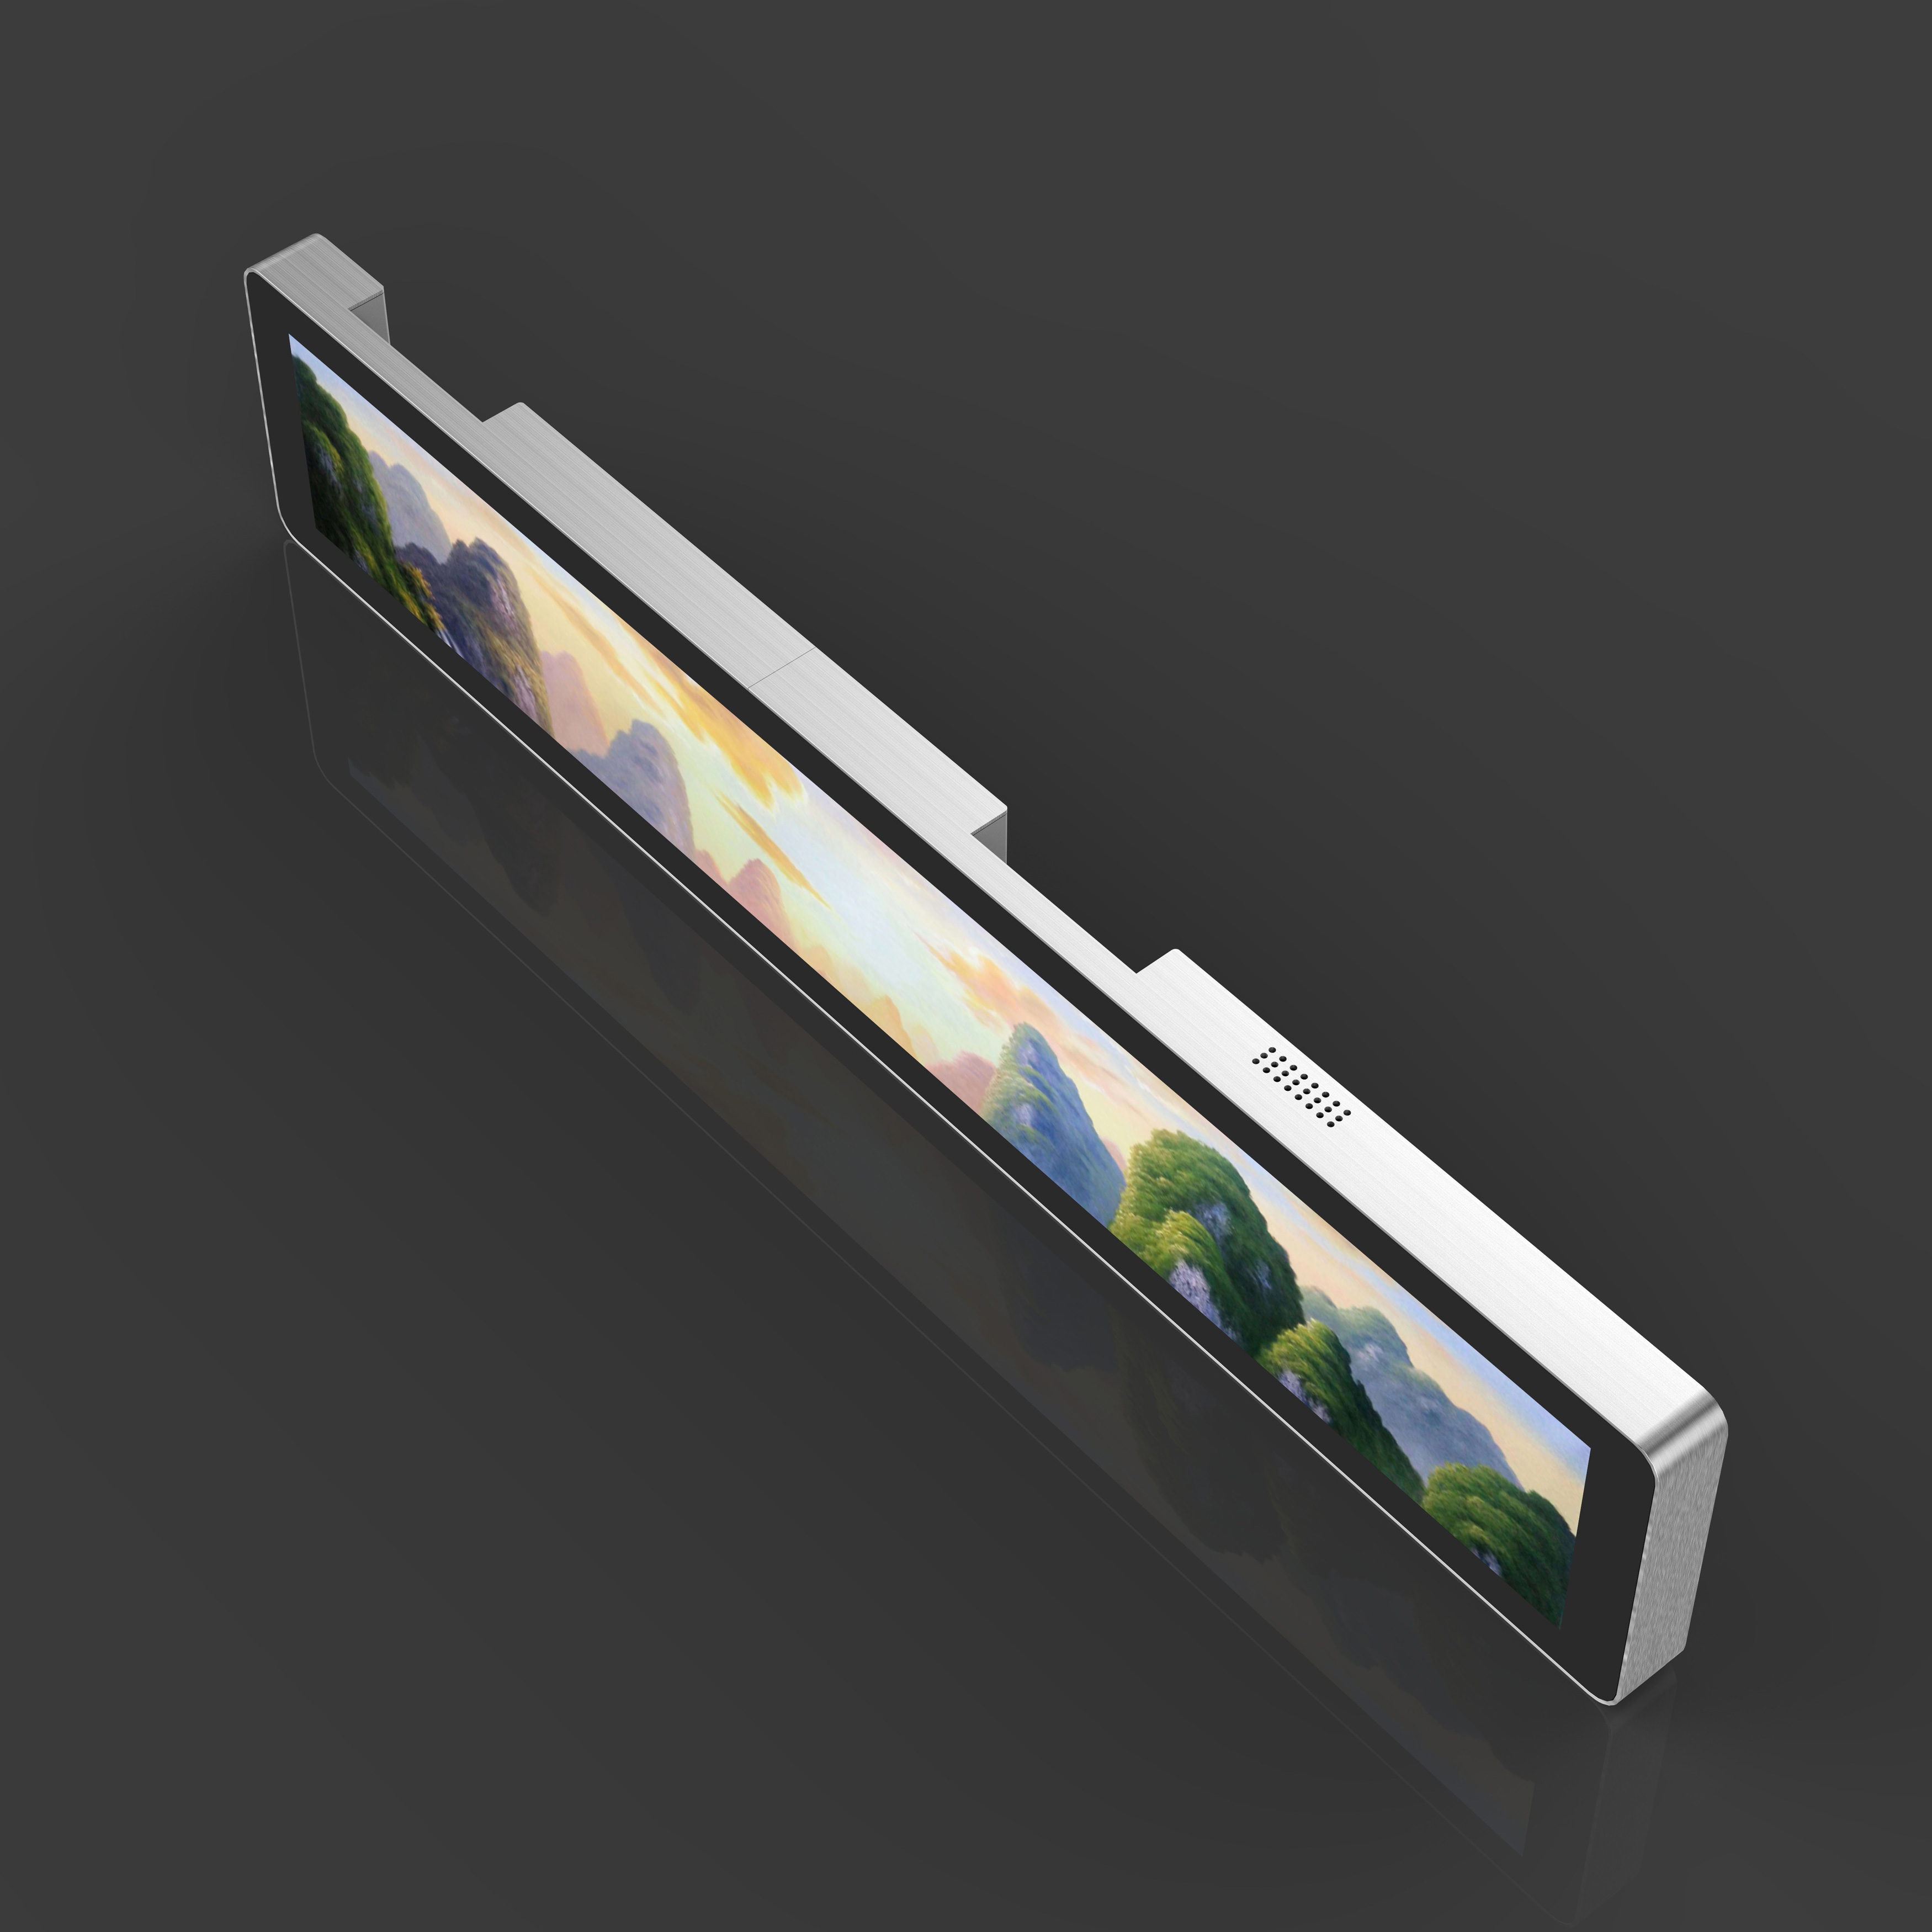 Ultra-wide stretched Digital Displays for shelf-edge display